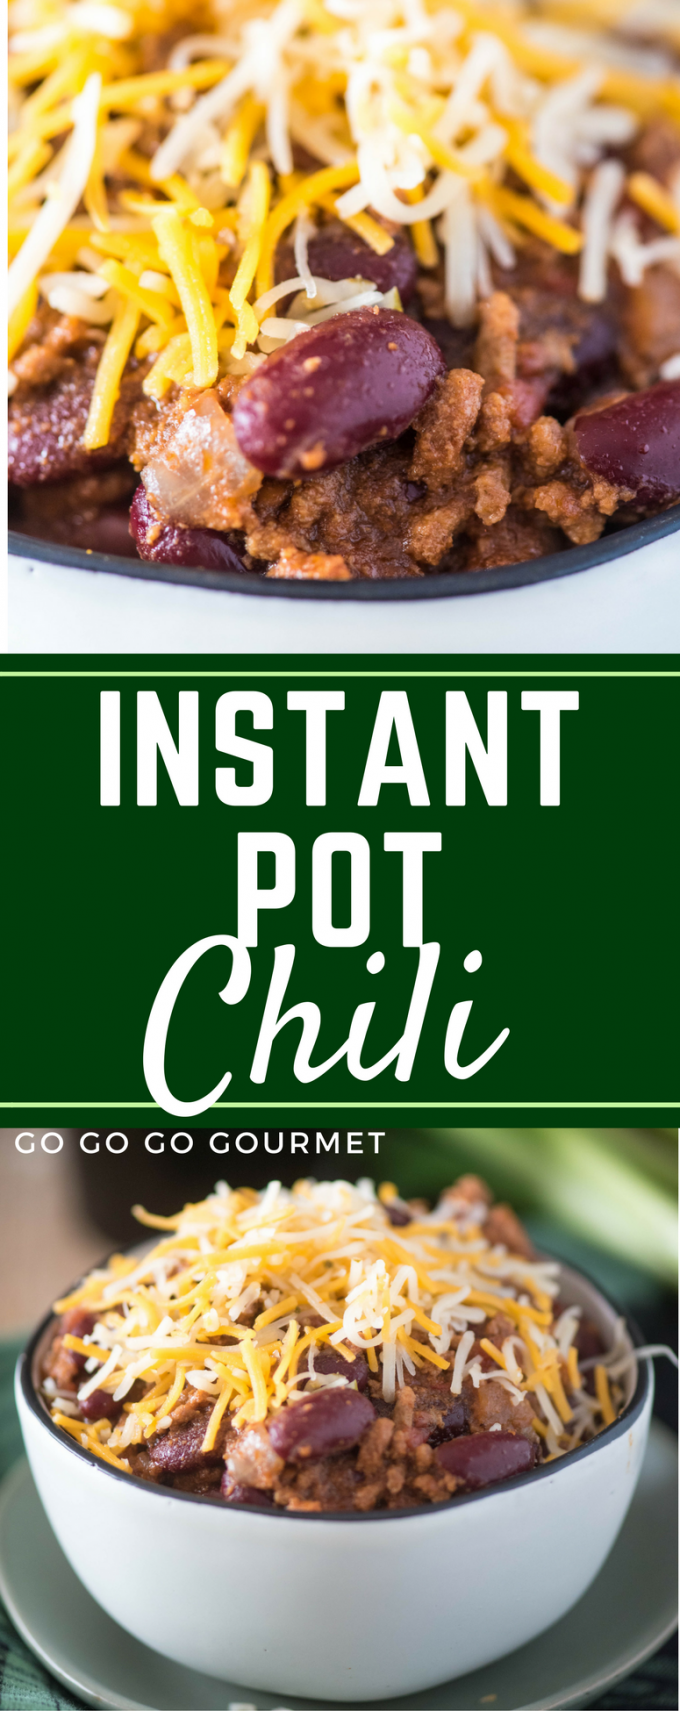 This Instant Pot Chili recipe is easy, fast, and chock full of ground beef, hearty beans and big flavors! | @gogogogourmet